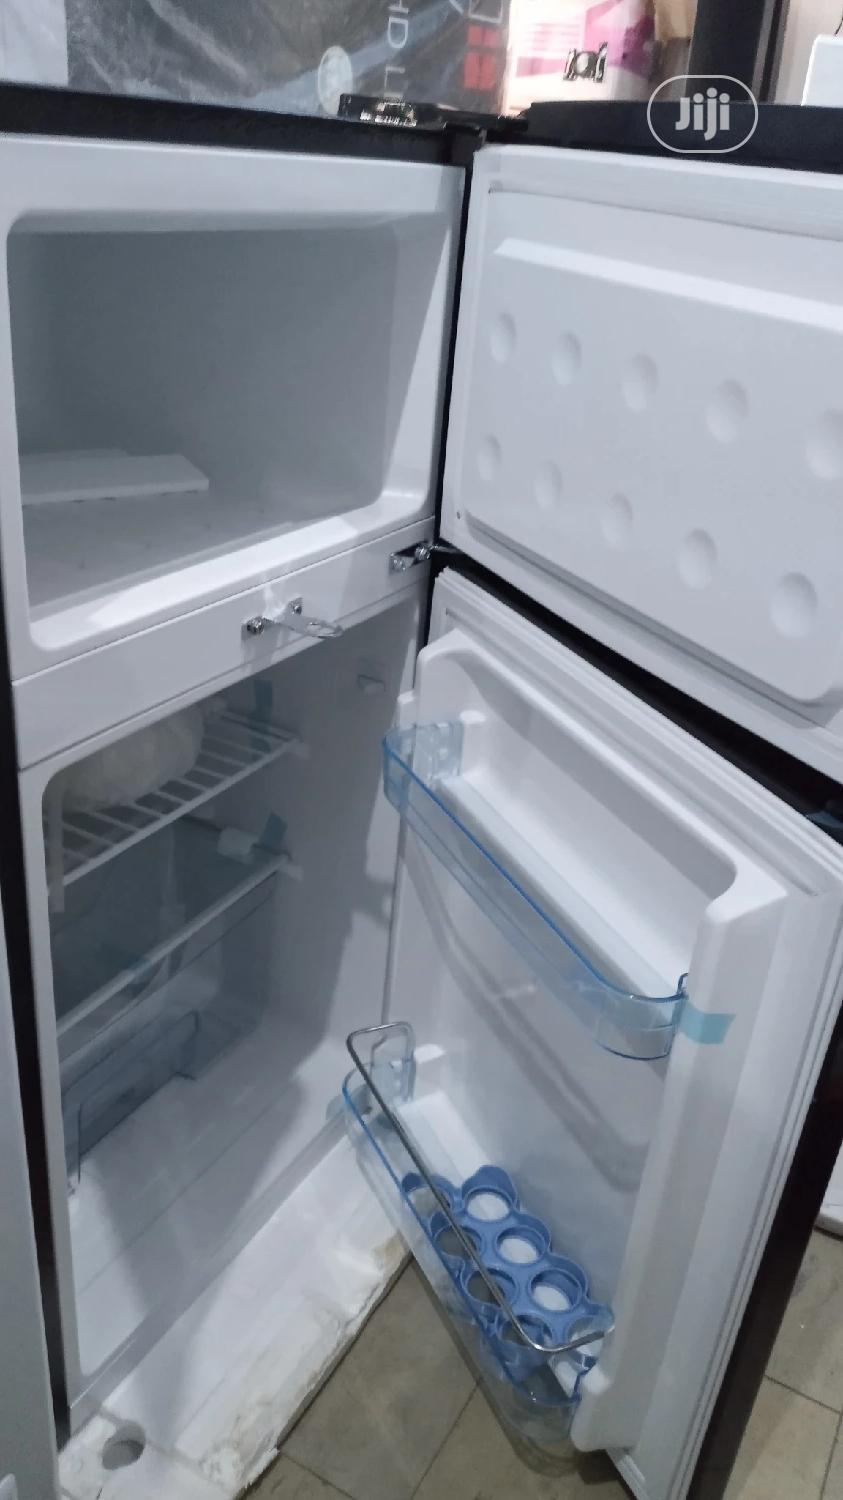 Bruhm DOUBLE DOOR BRD-120 -120 Ltrs Refrigerator | Kitchen Appliances for sale in Ibadan, Oyo State, Nigeria